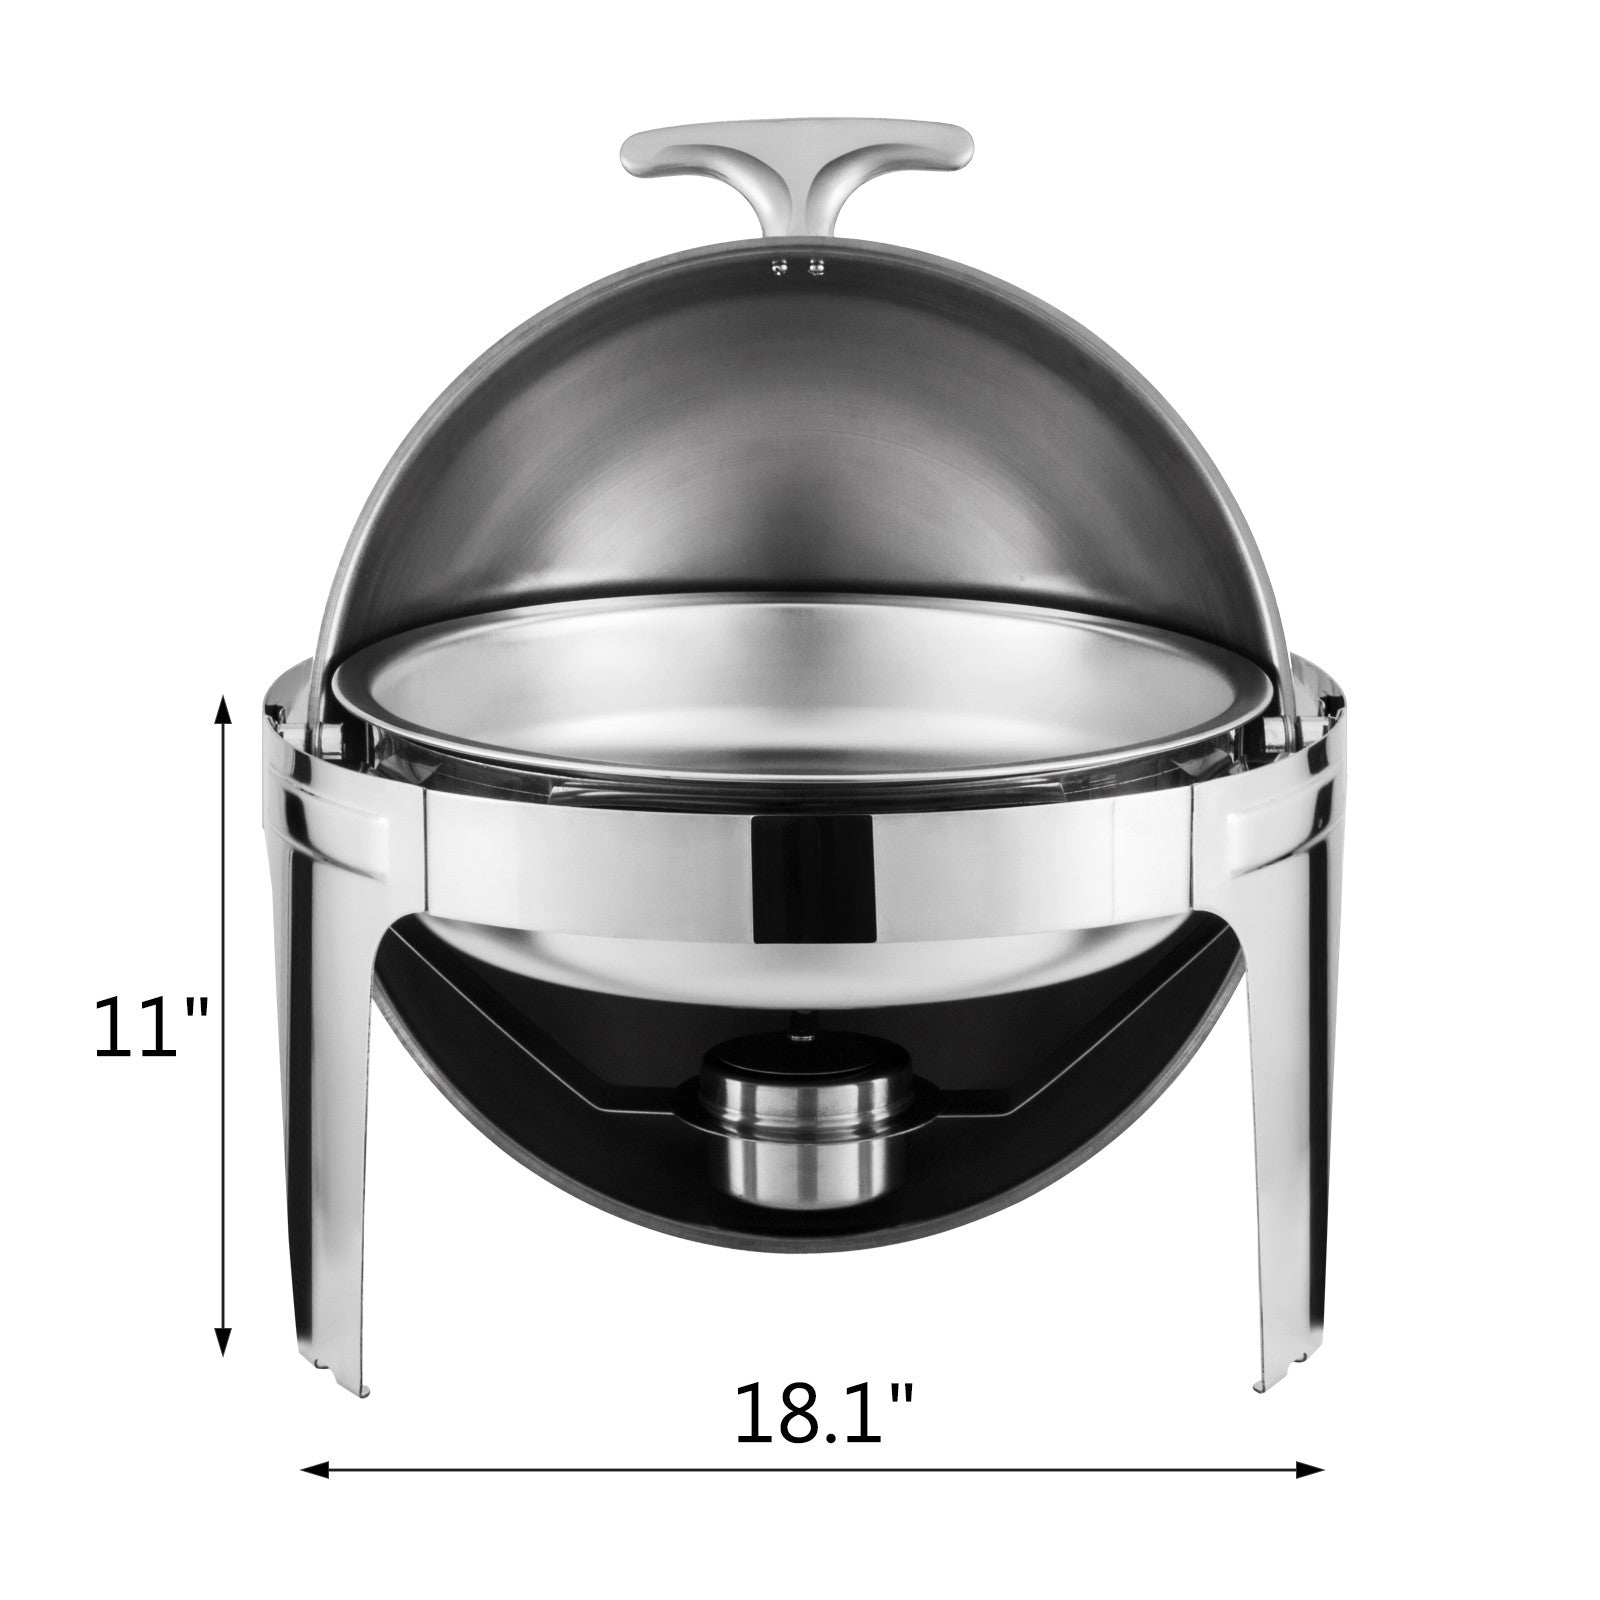 2 Pack Catering Stainless Steel Chafer Chafing Dish Sets Round Roll Top 6 Qt